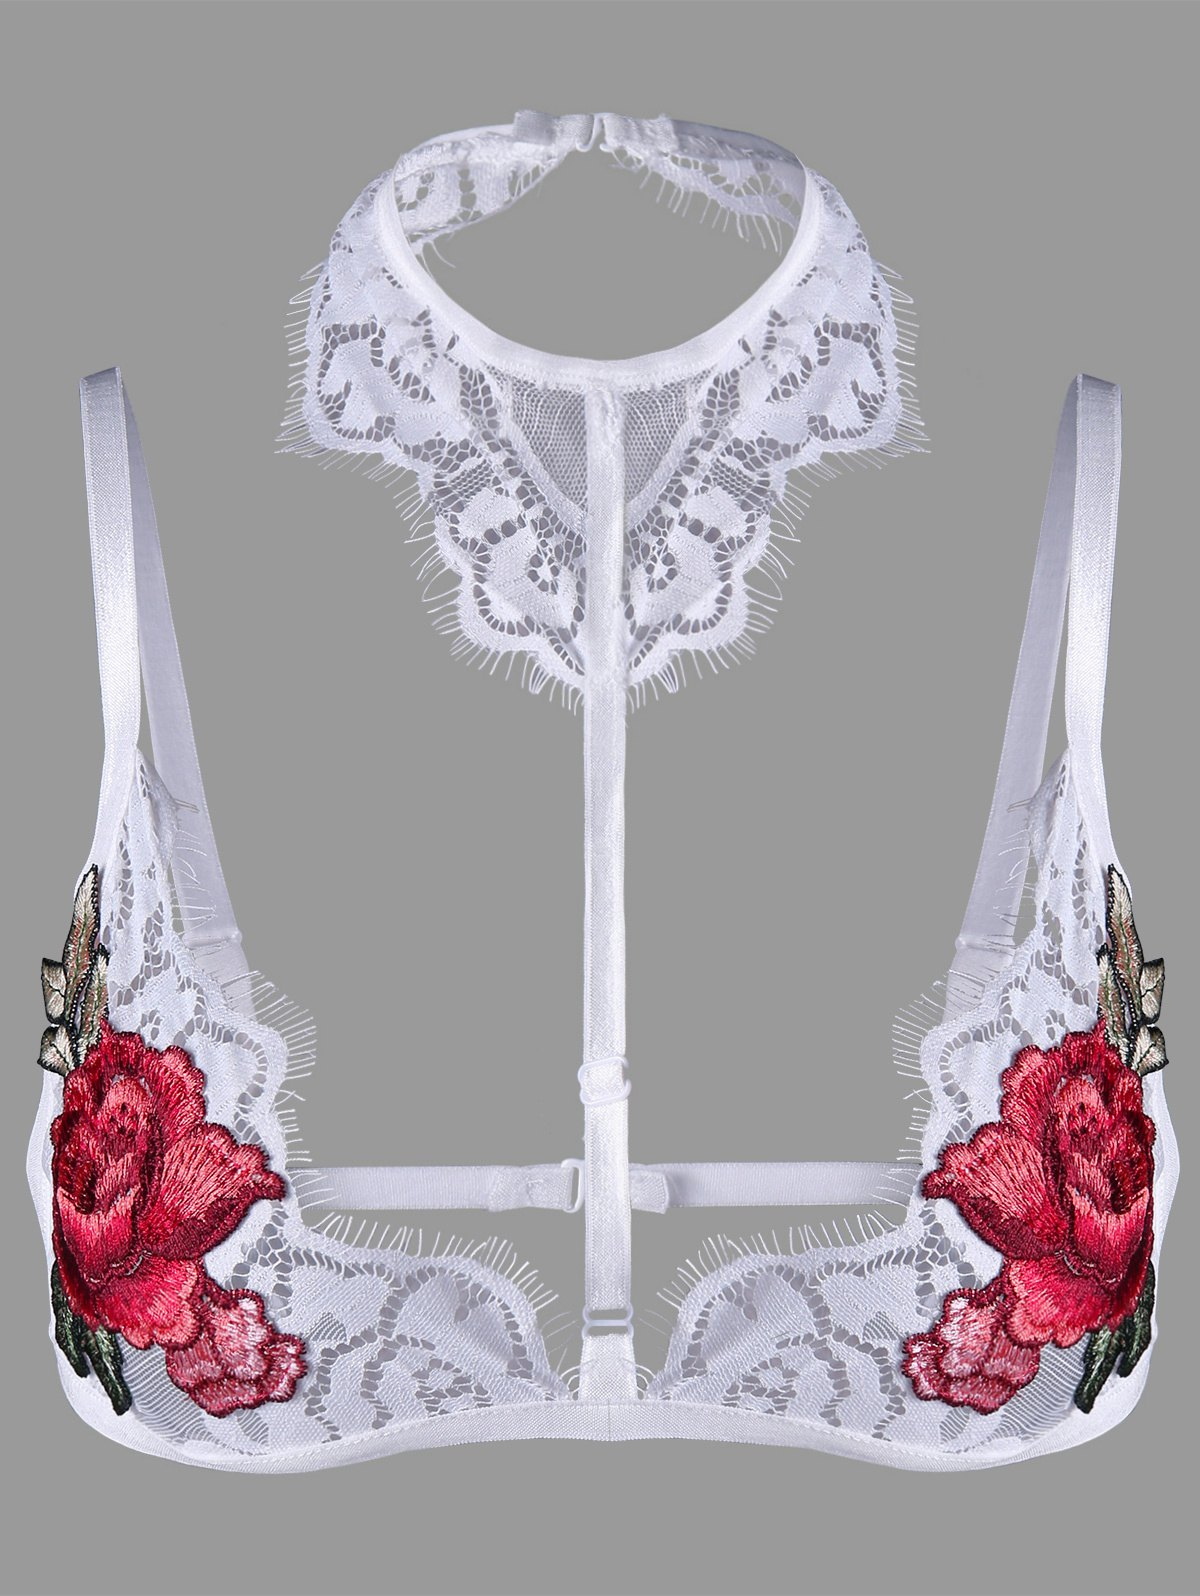 Lace Flower Embroidered Choker Bralette - WHITE L